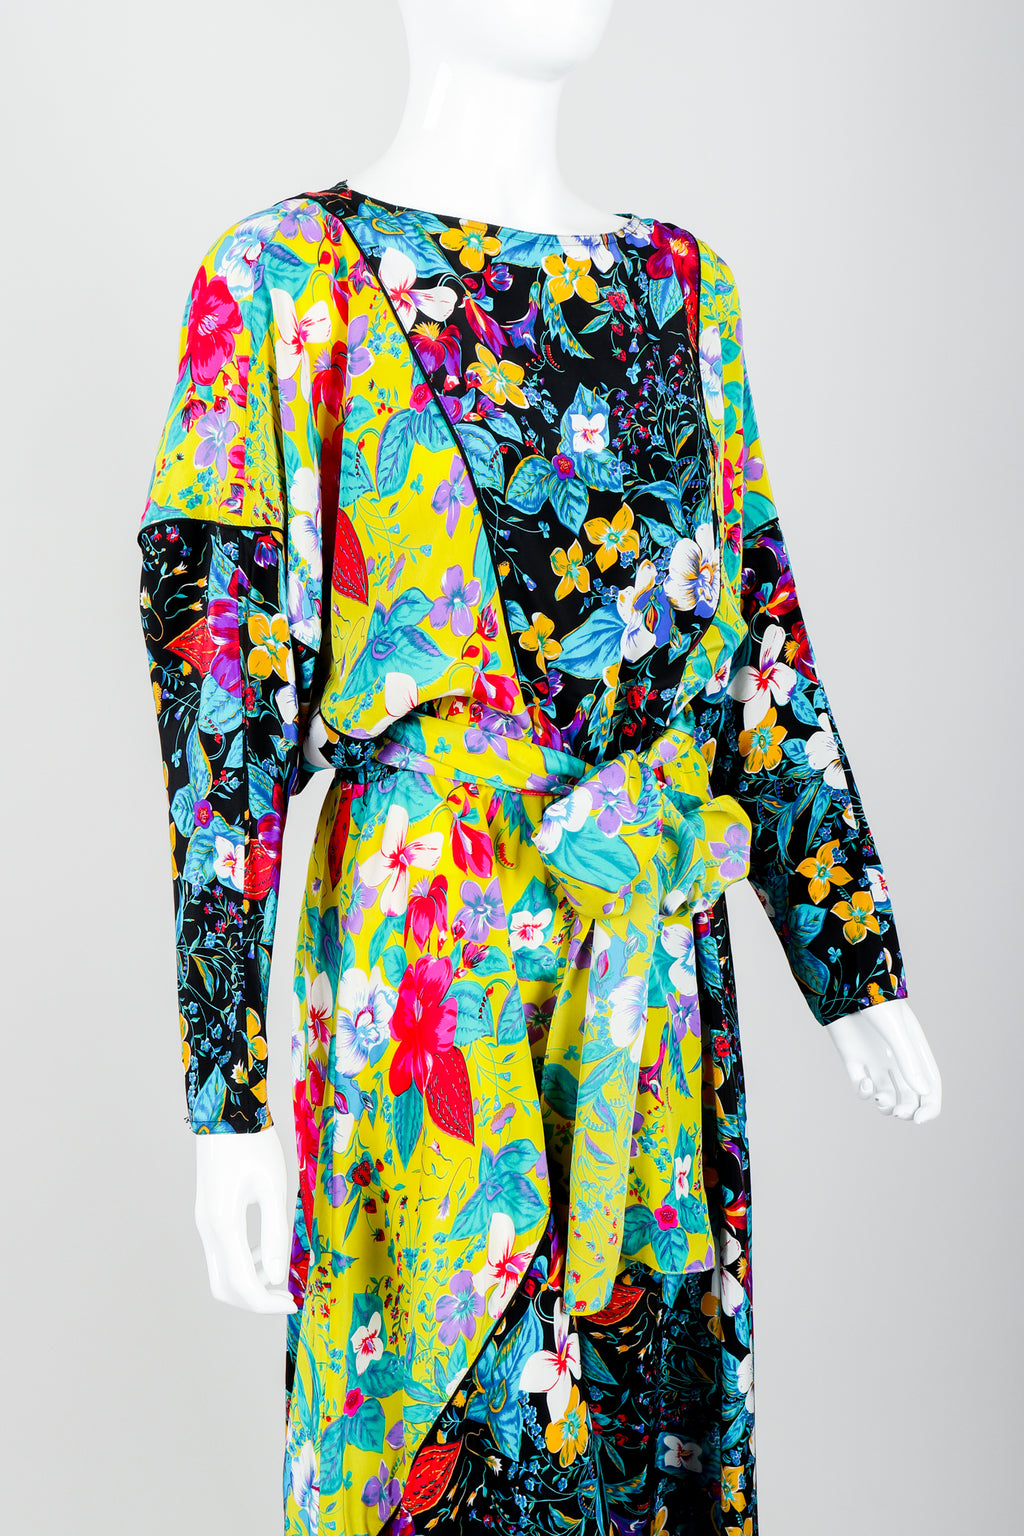 Vintage Rickie Freeman for Teri Jon Floral Batwing Dress on Mannequin Angle Crop at Recess